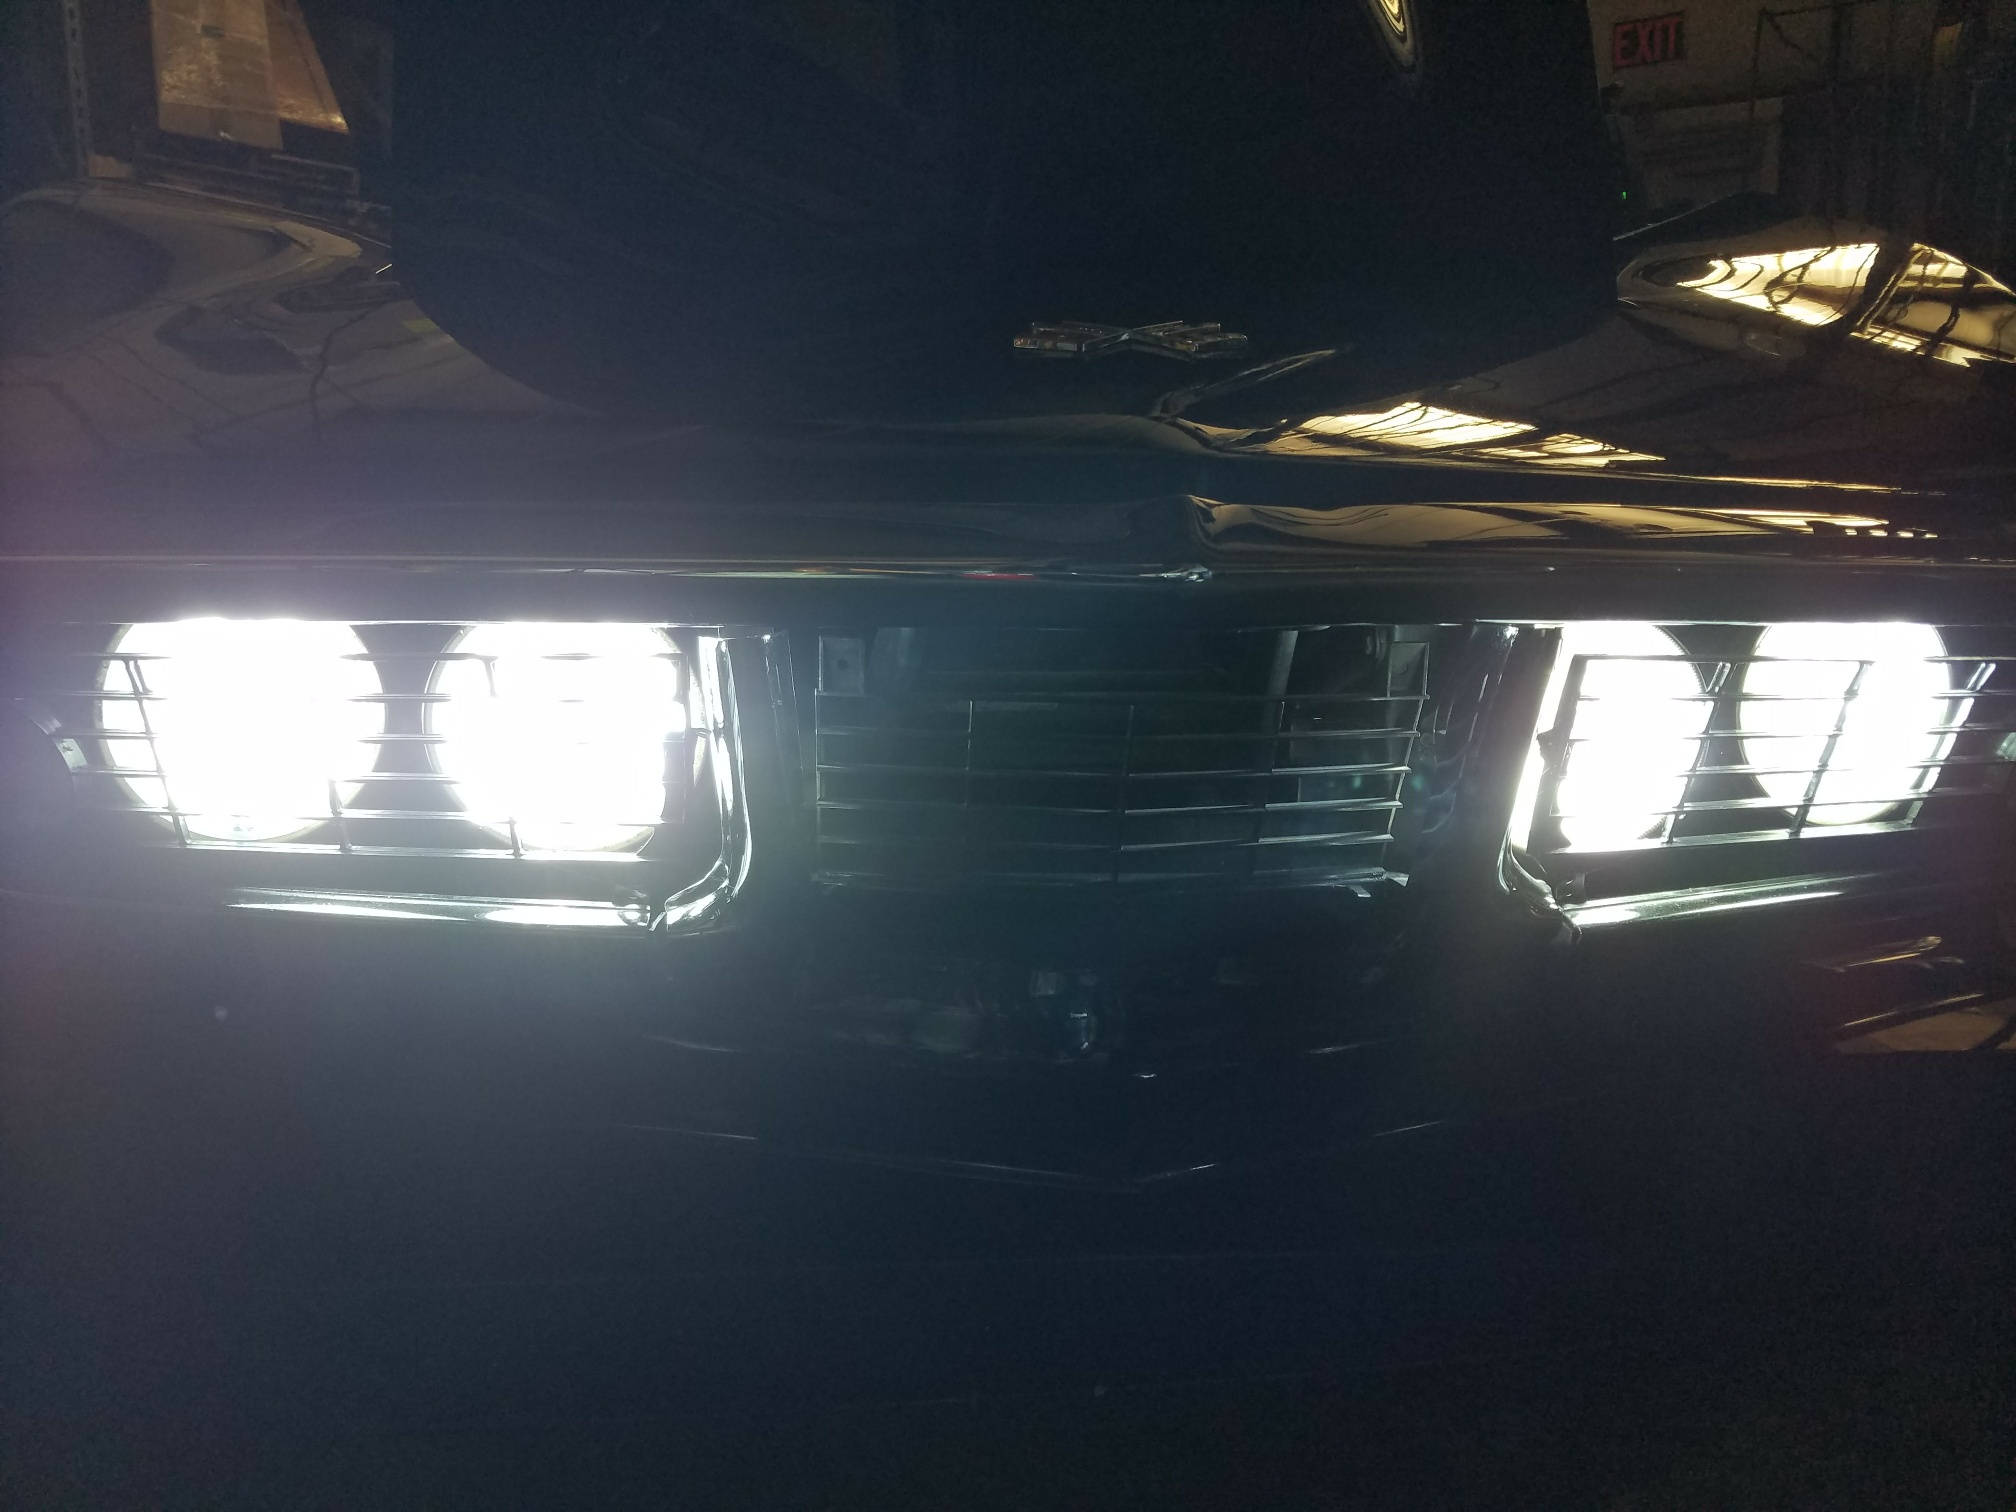 LED headlight kits for the win, we all need these-20170519_090245_001_resized.jpg